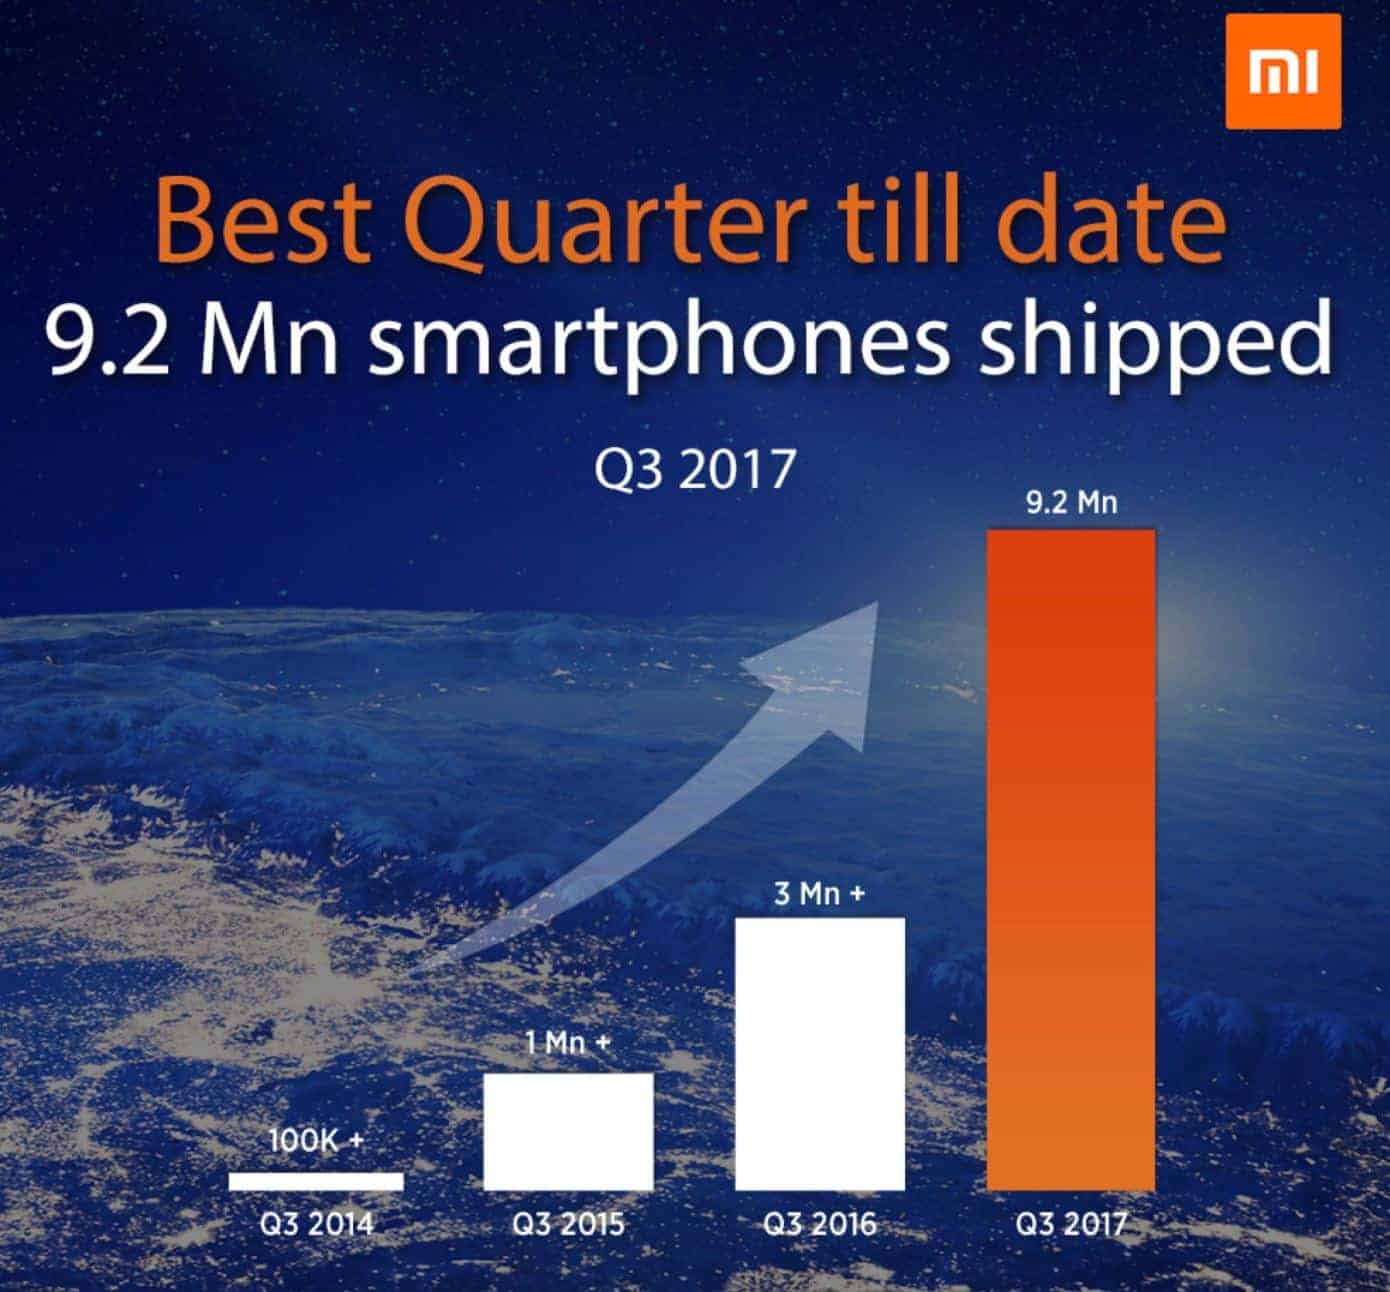 Xiaomi India Shipped 92M Android Smartphones In Q3 2017